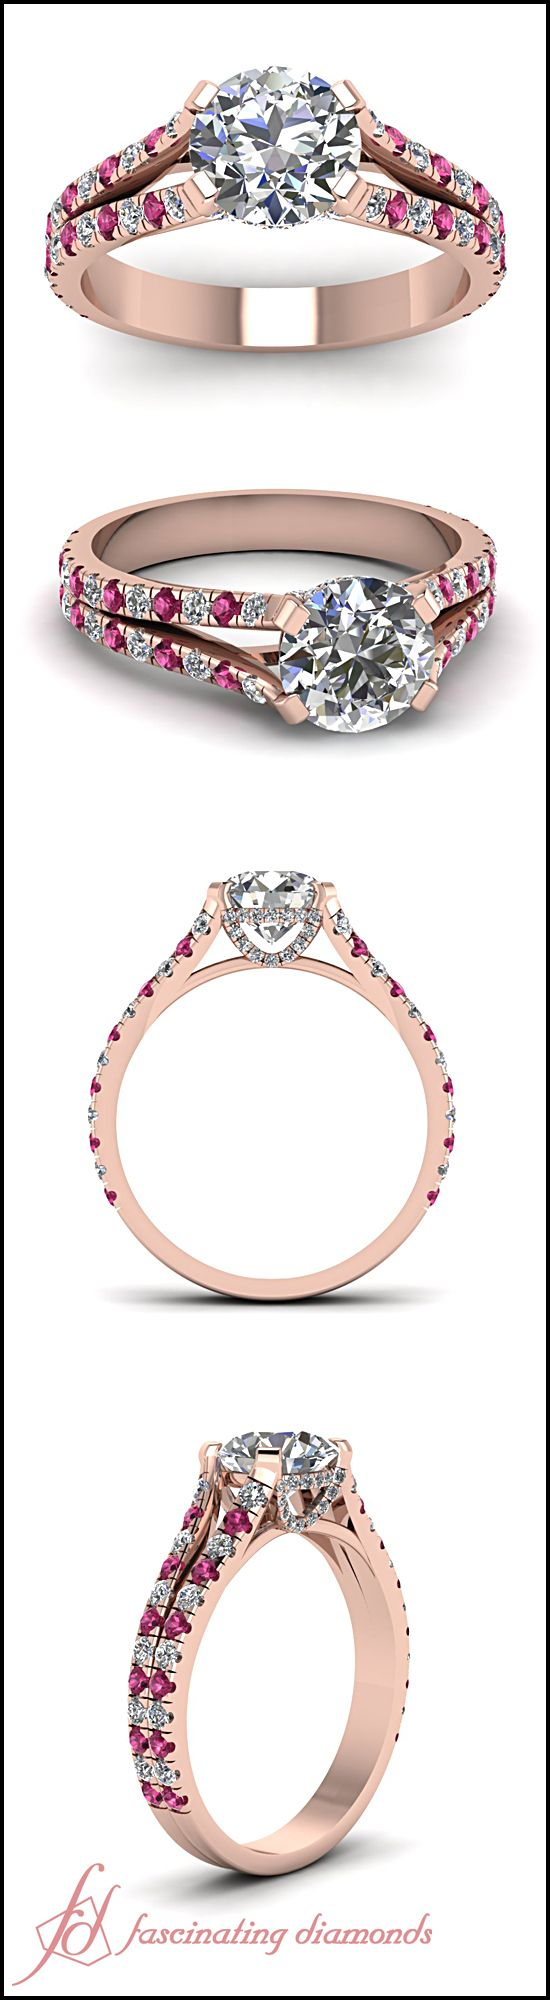 http://sold2gold.nl/saffier - Impeccable Ring || Round Cut Diamond Side Stone Ring With Pink Sapphire In 14k Rose Gold